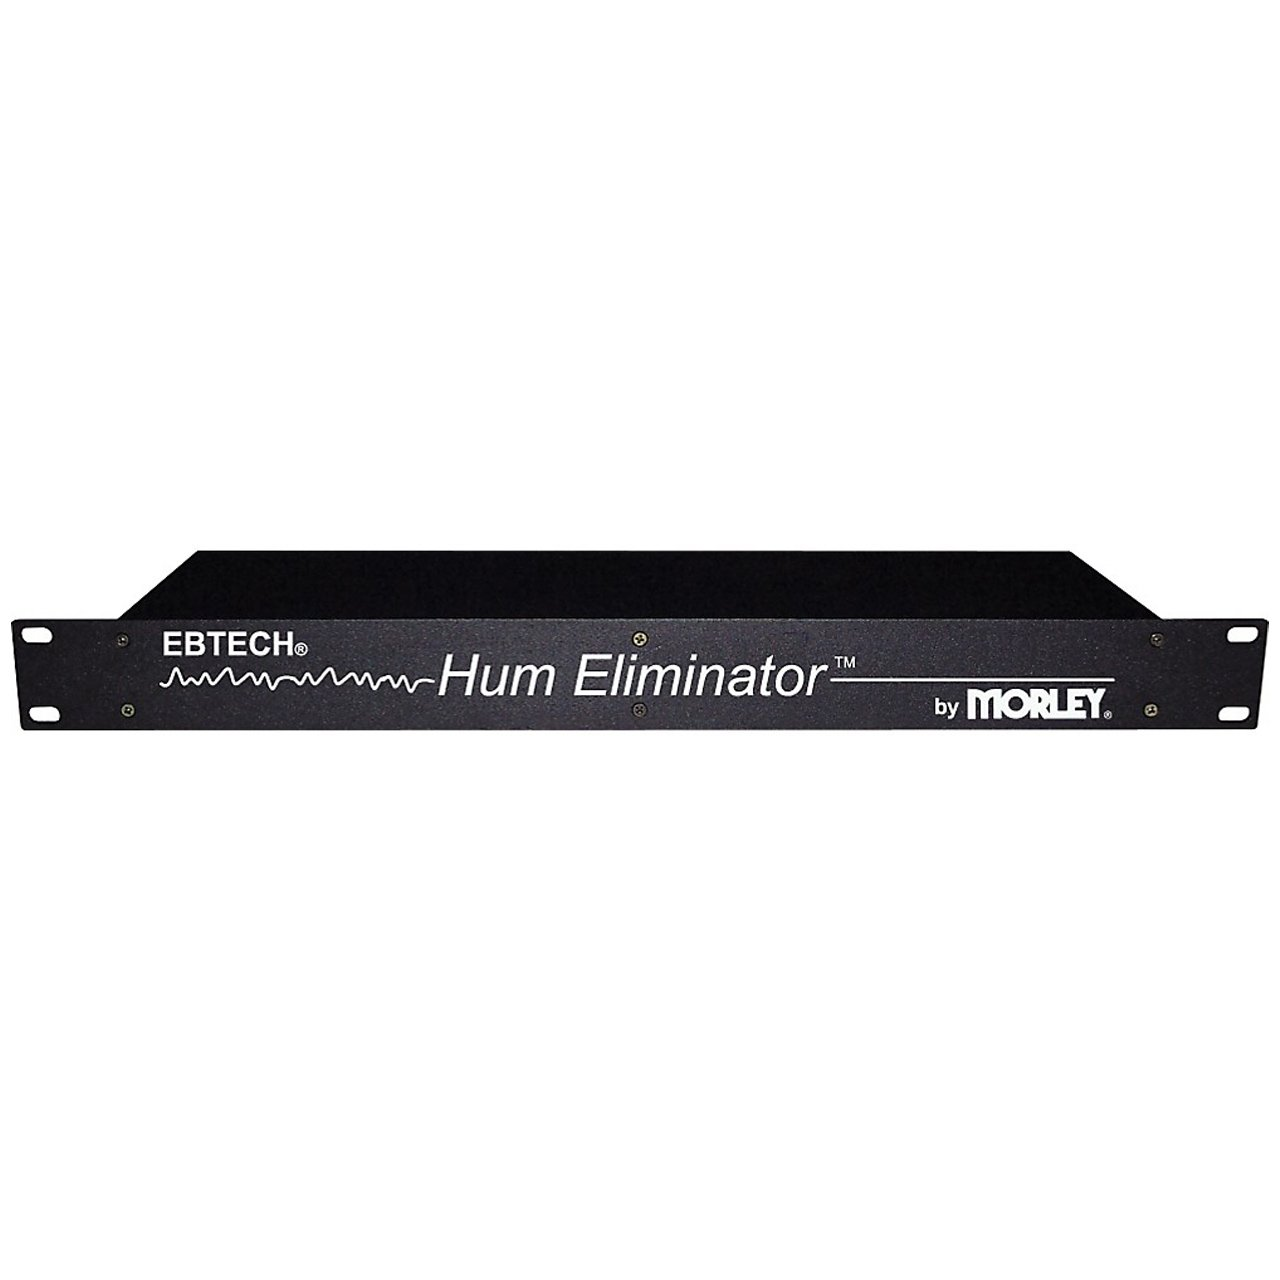 PA Accessories - EBTech Hum Eliminator 8-channel Rack-Mountable W/ TRS Connectors